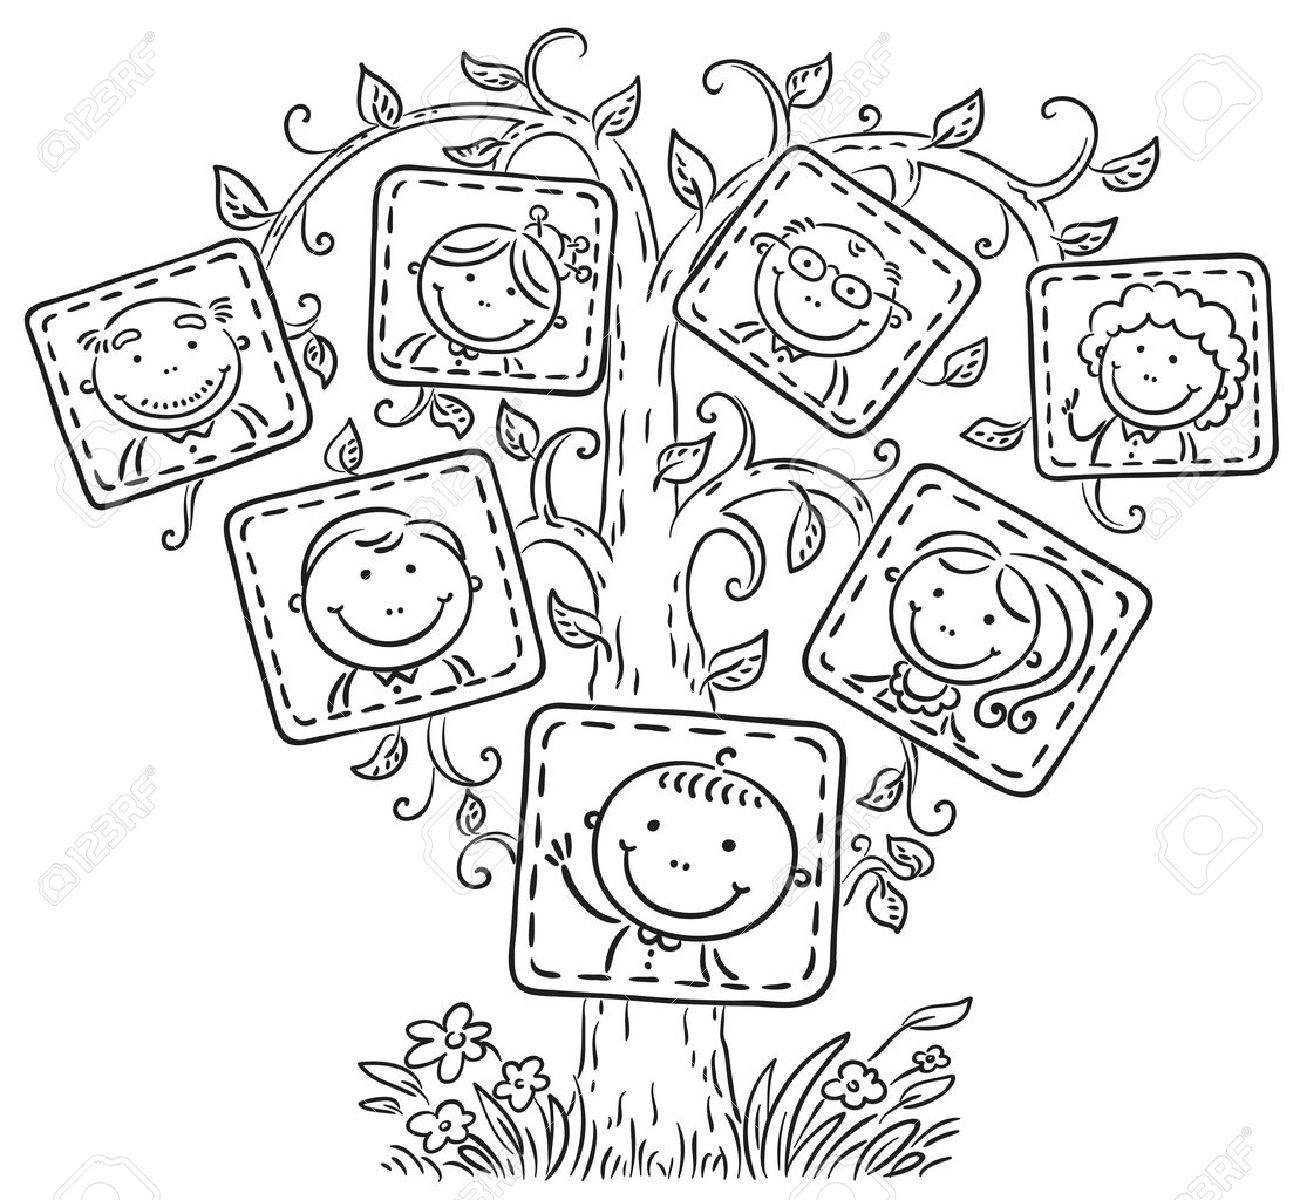 Happy family tree in pictures, black and white outline.